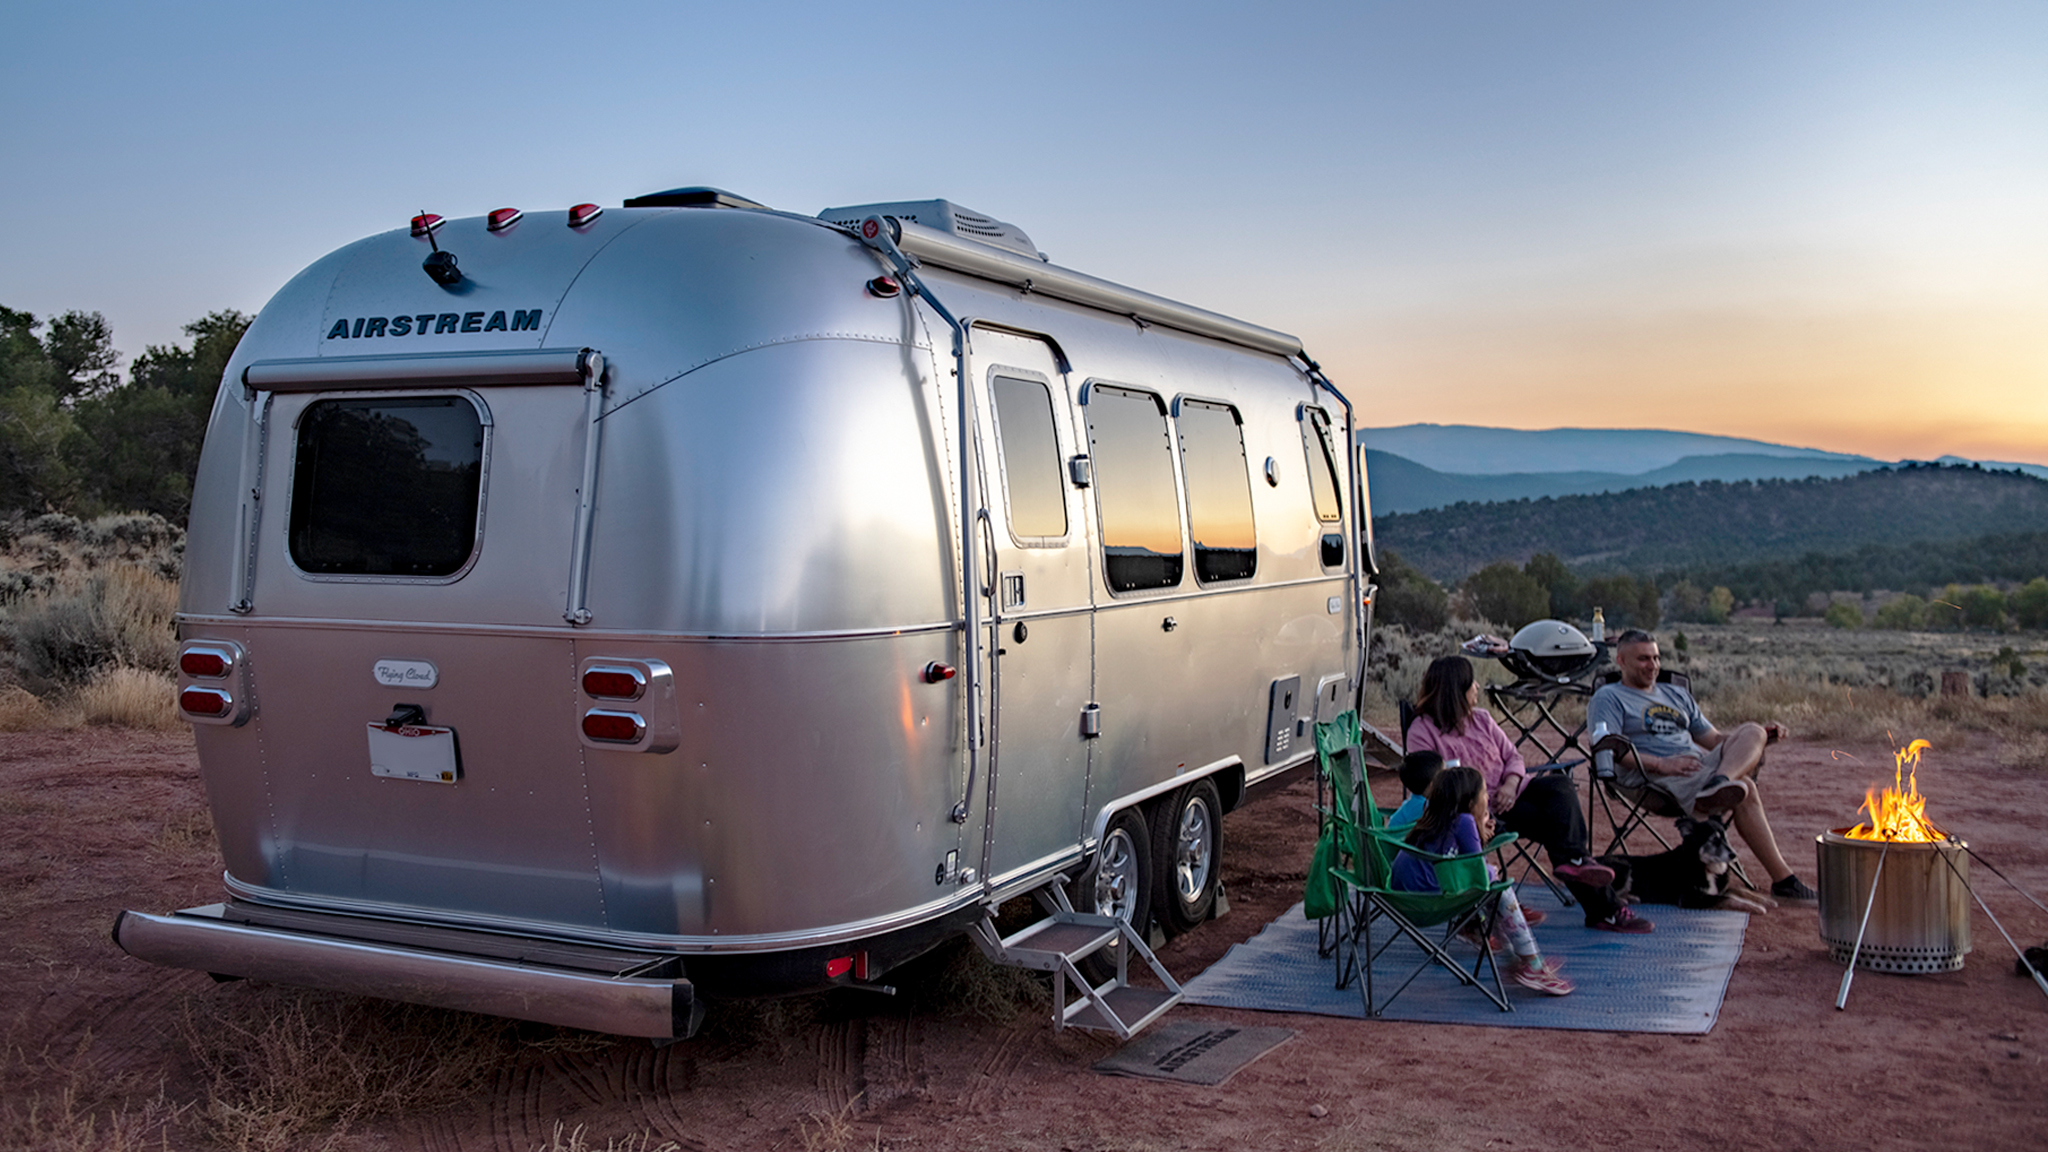 The Upgrade to Lithium Batteries with Airstream Power Plus | Airstream.com